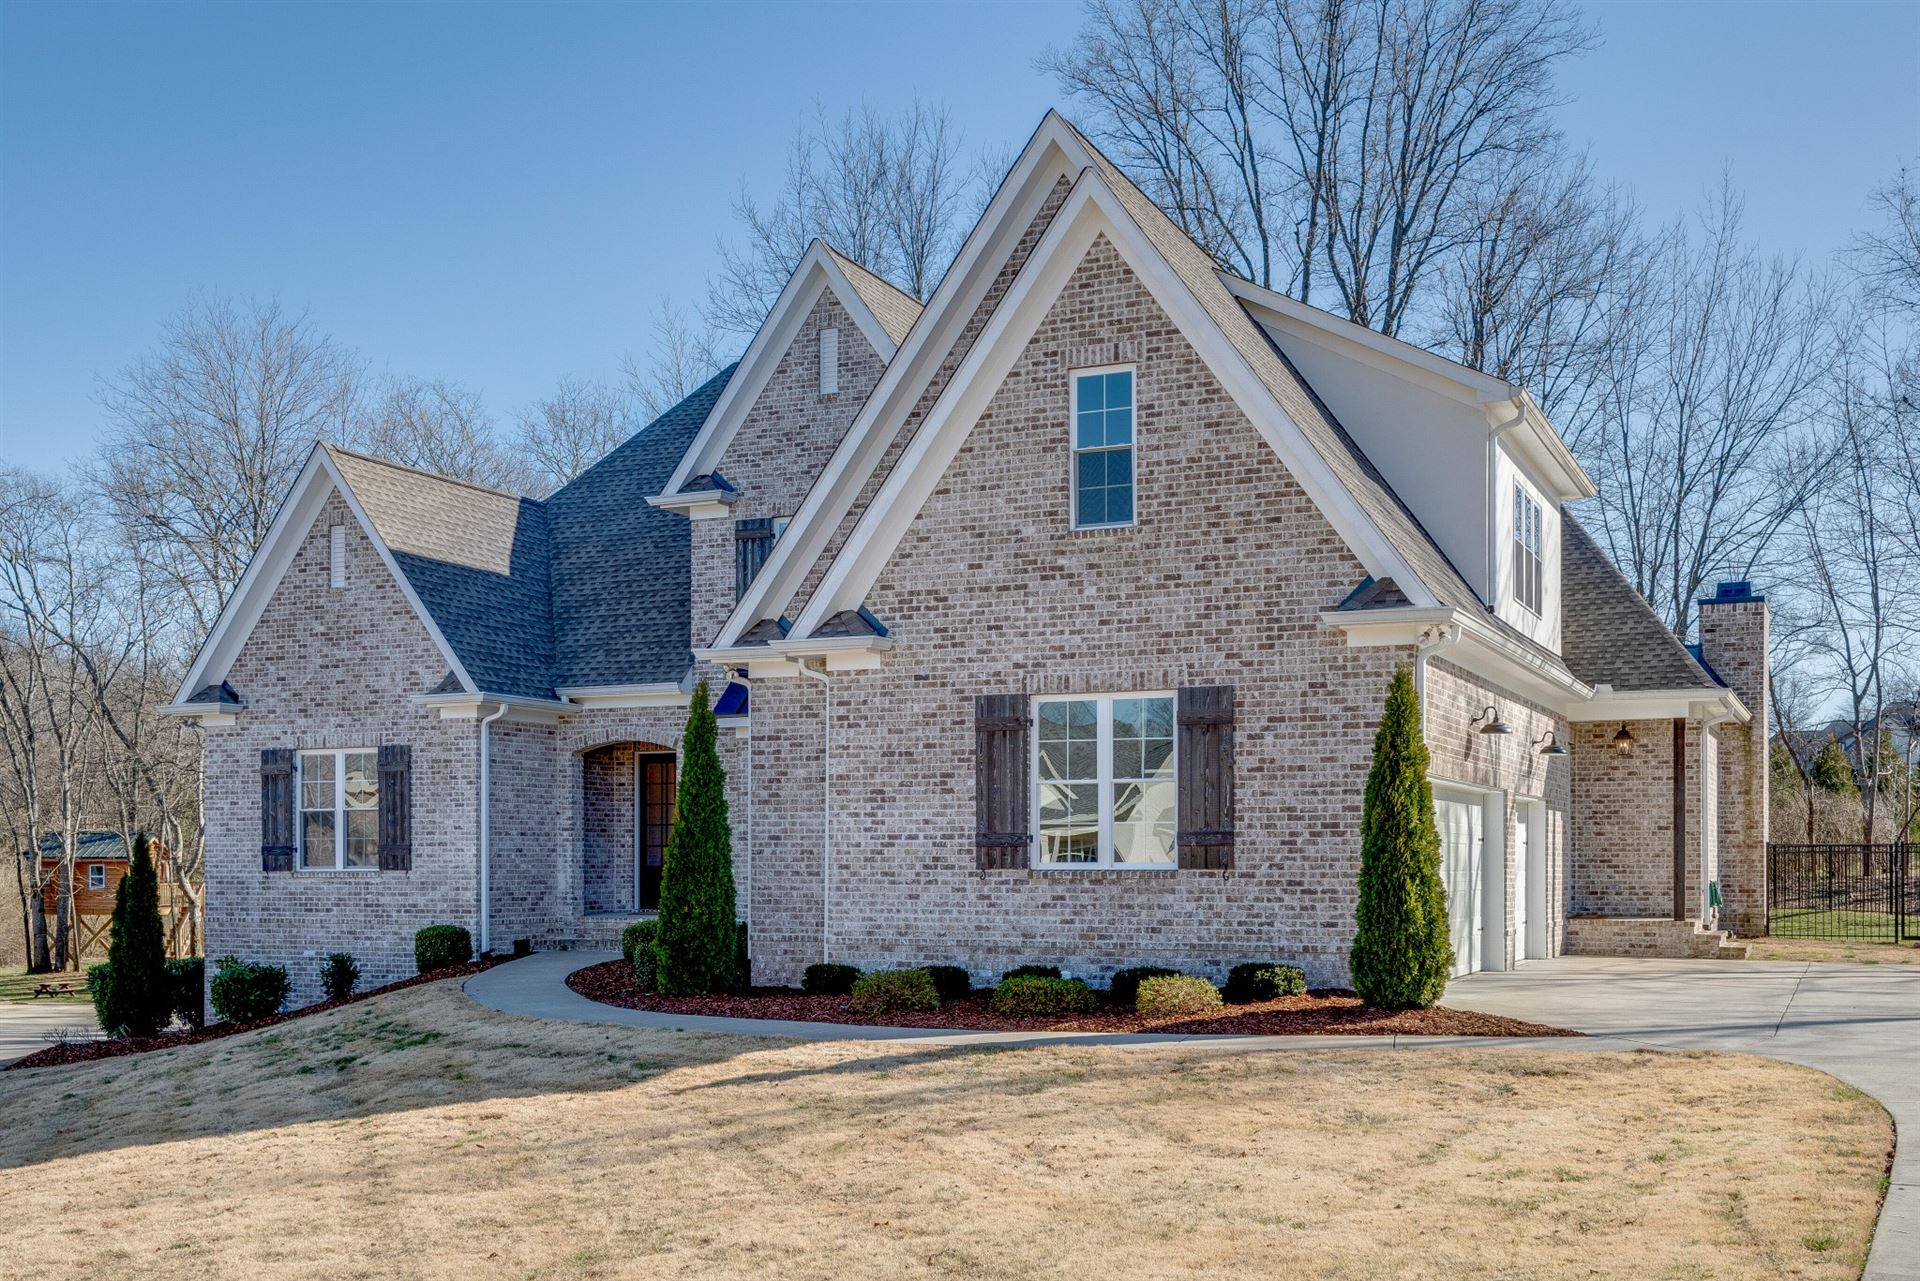 Photo of 8252 Cavendish Ct, Brentwood, TN 37027 (MLS # 2233193)